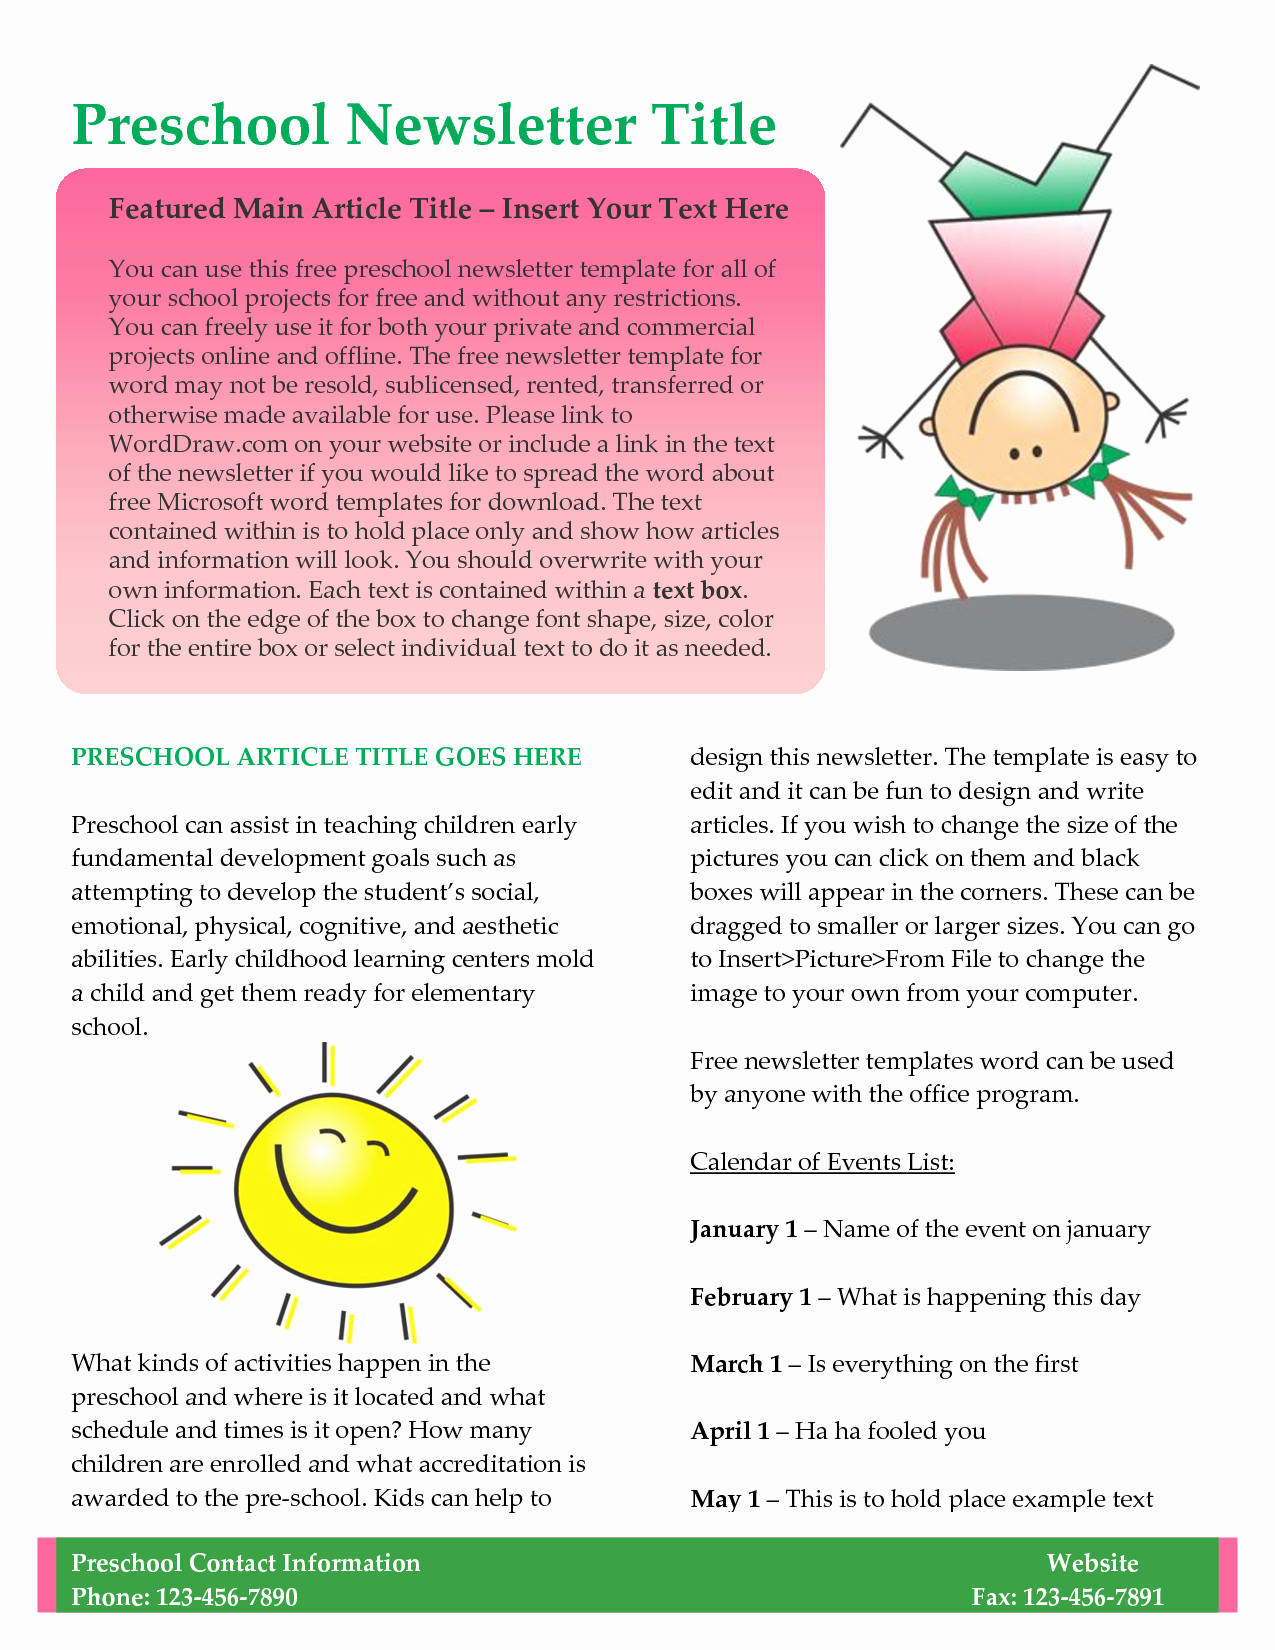 Newsletter Template for Teachers Elegant Preschool Newsletter Template